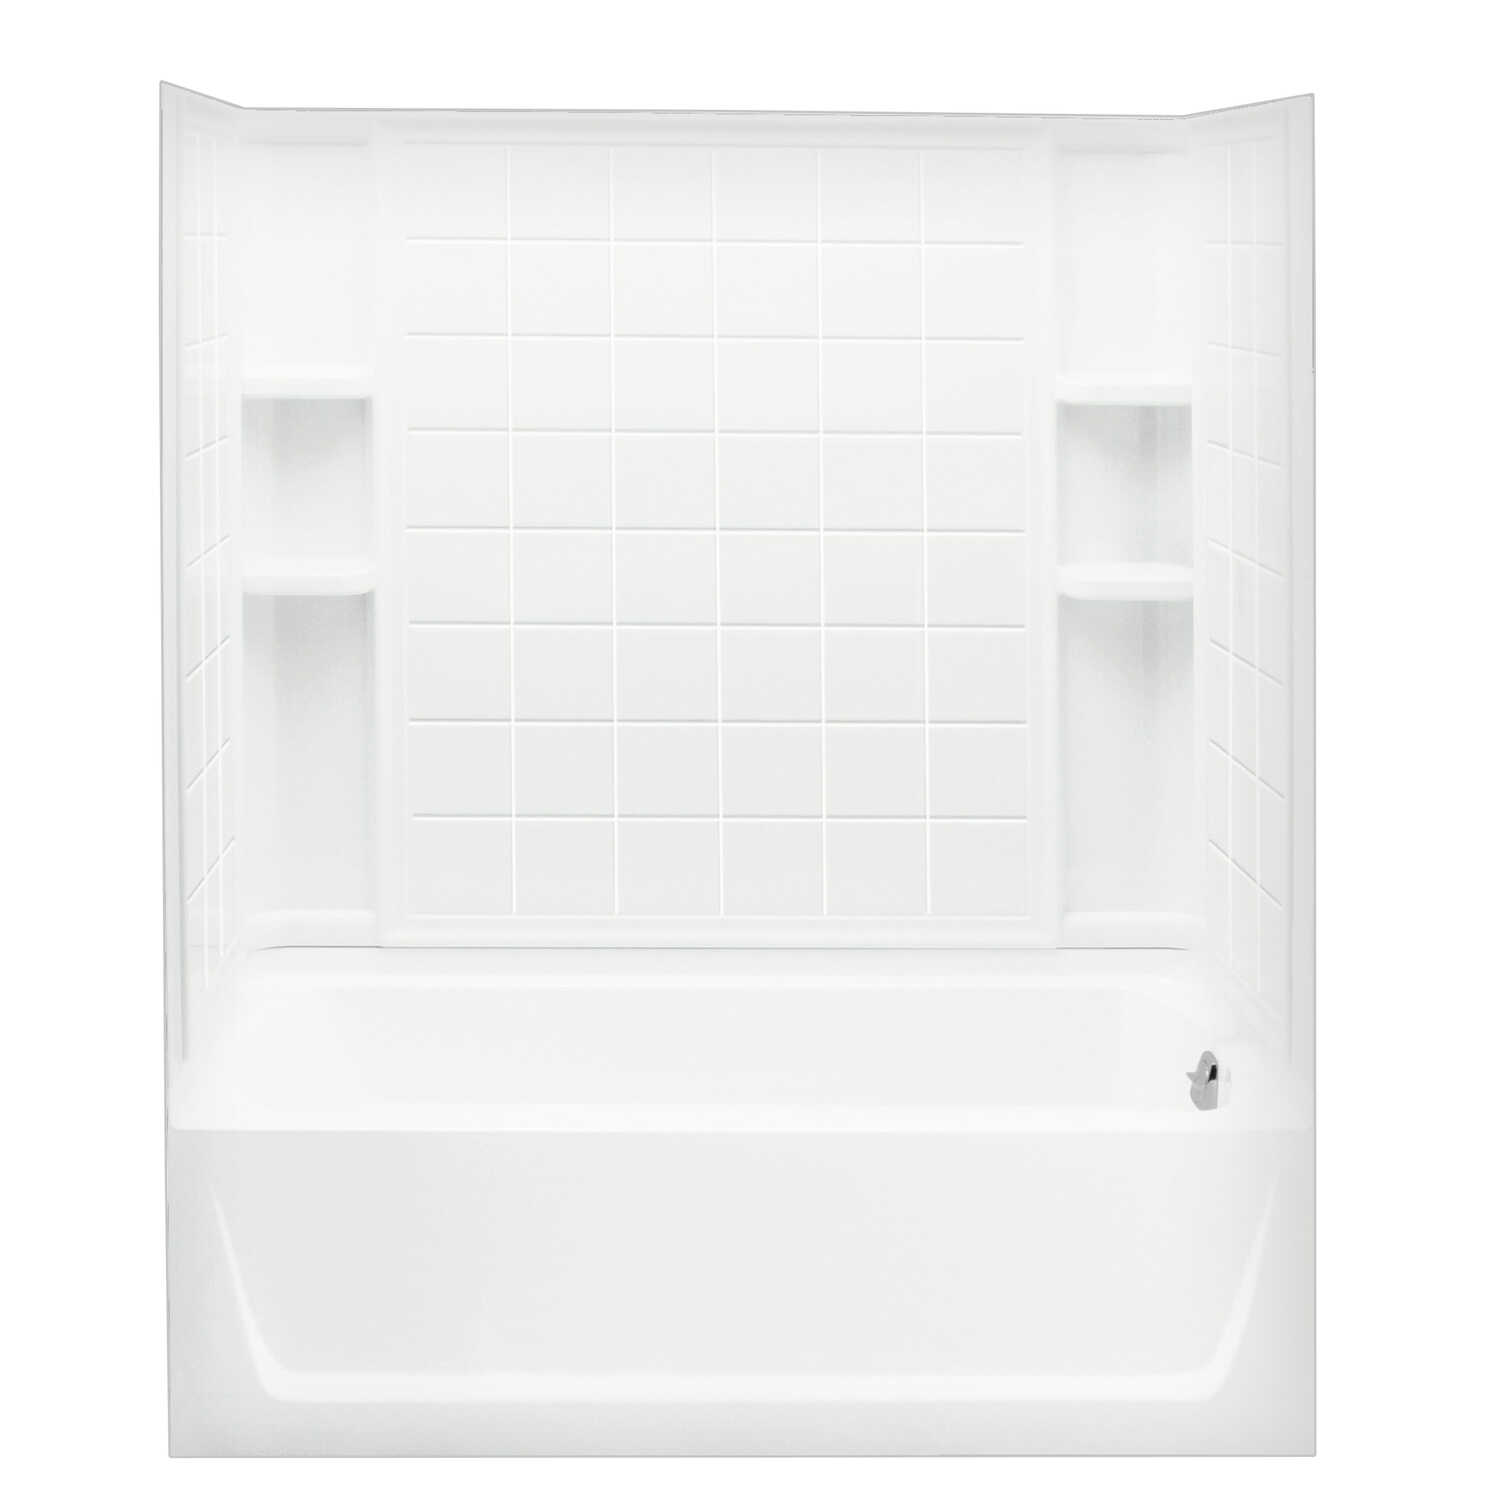 Sterling  Ensemble  16 in. H x 30 in. W x 60 in. L White  Bathtub  One Piece  Right Hand Drain  Rect